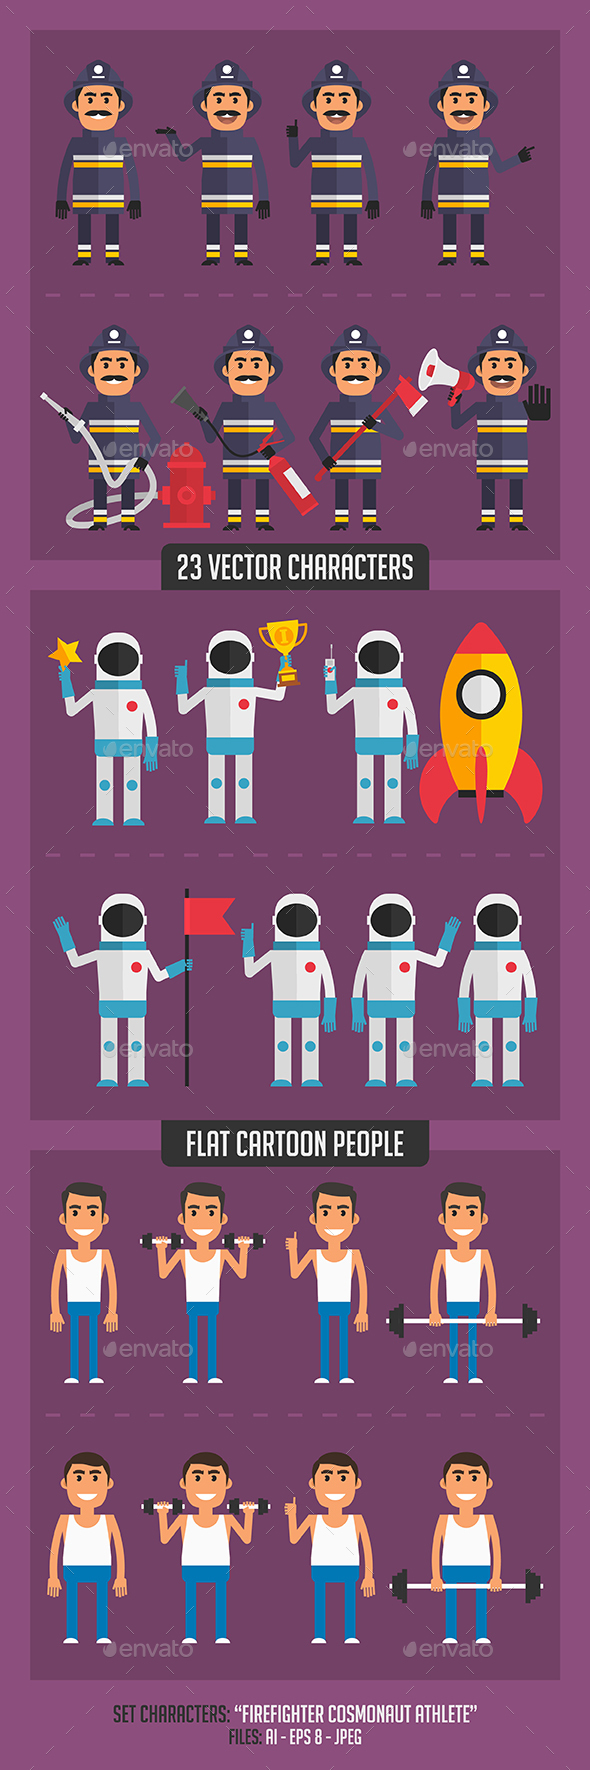 Firefighter Cosmonaut and Athlete - People Characters